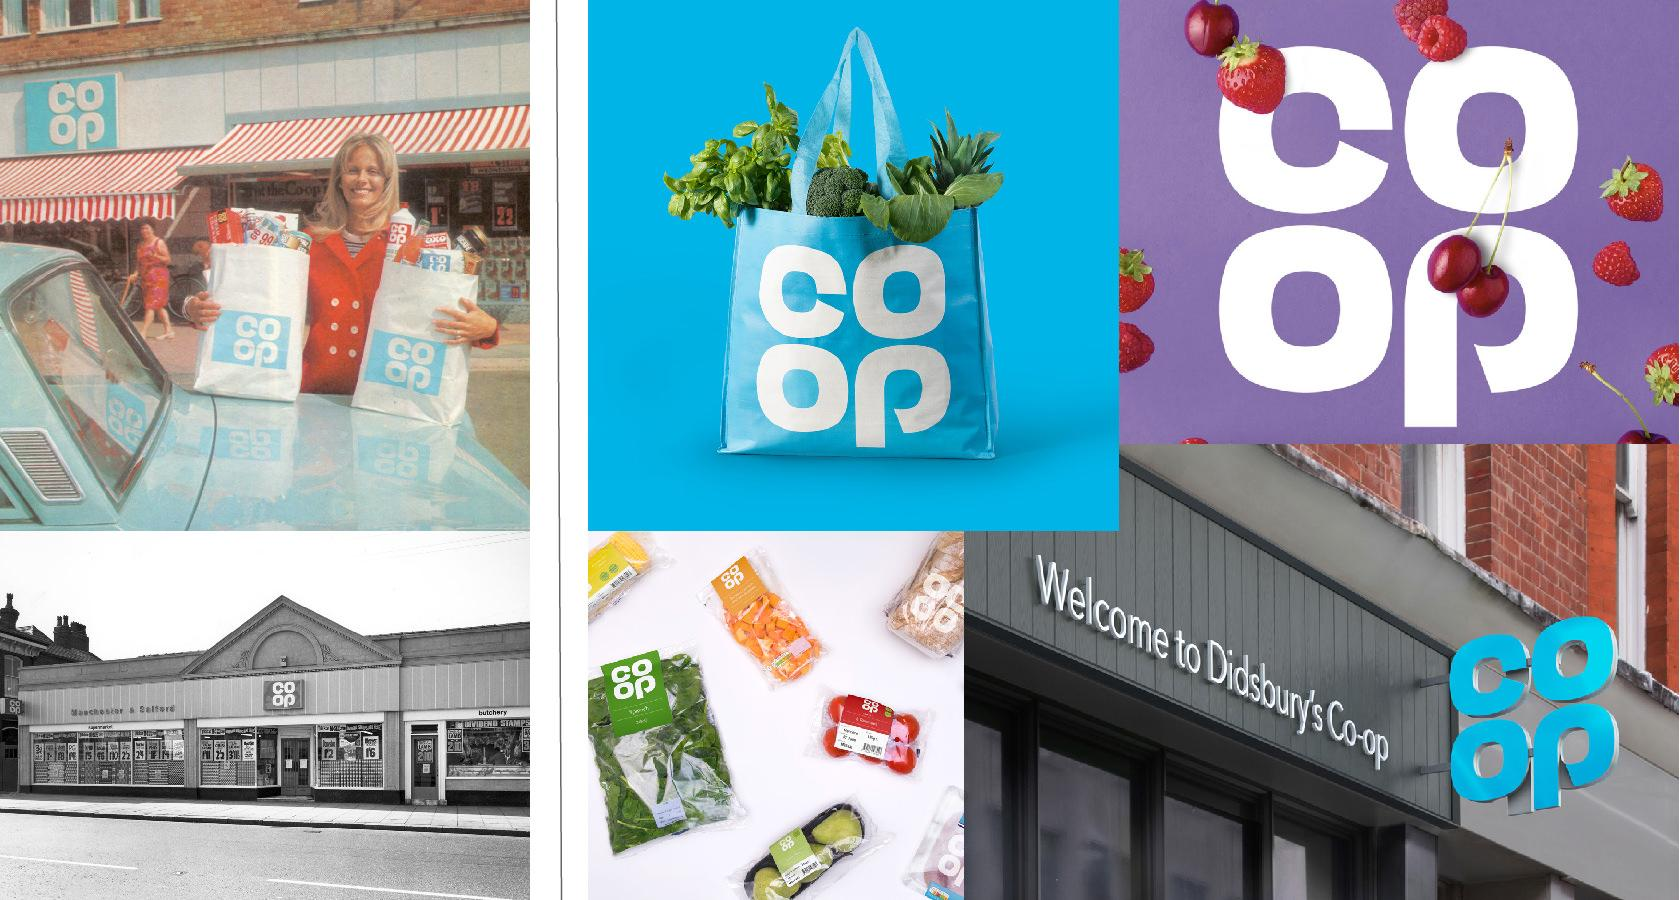 Co-op's rebranding strategy included reviving its past.